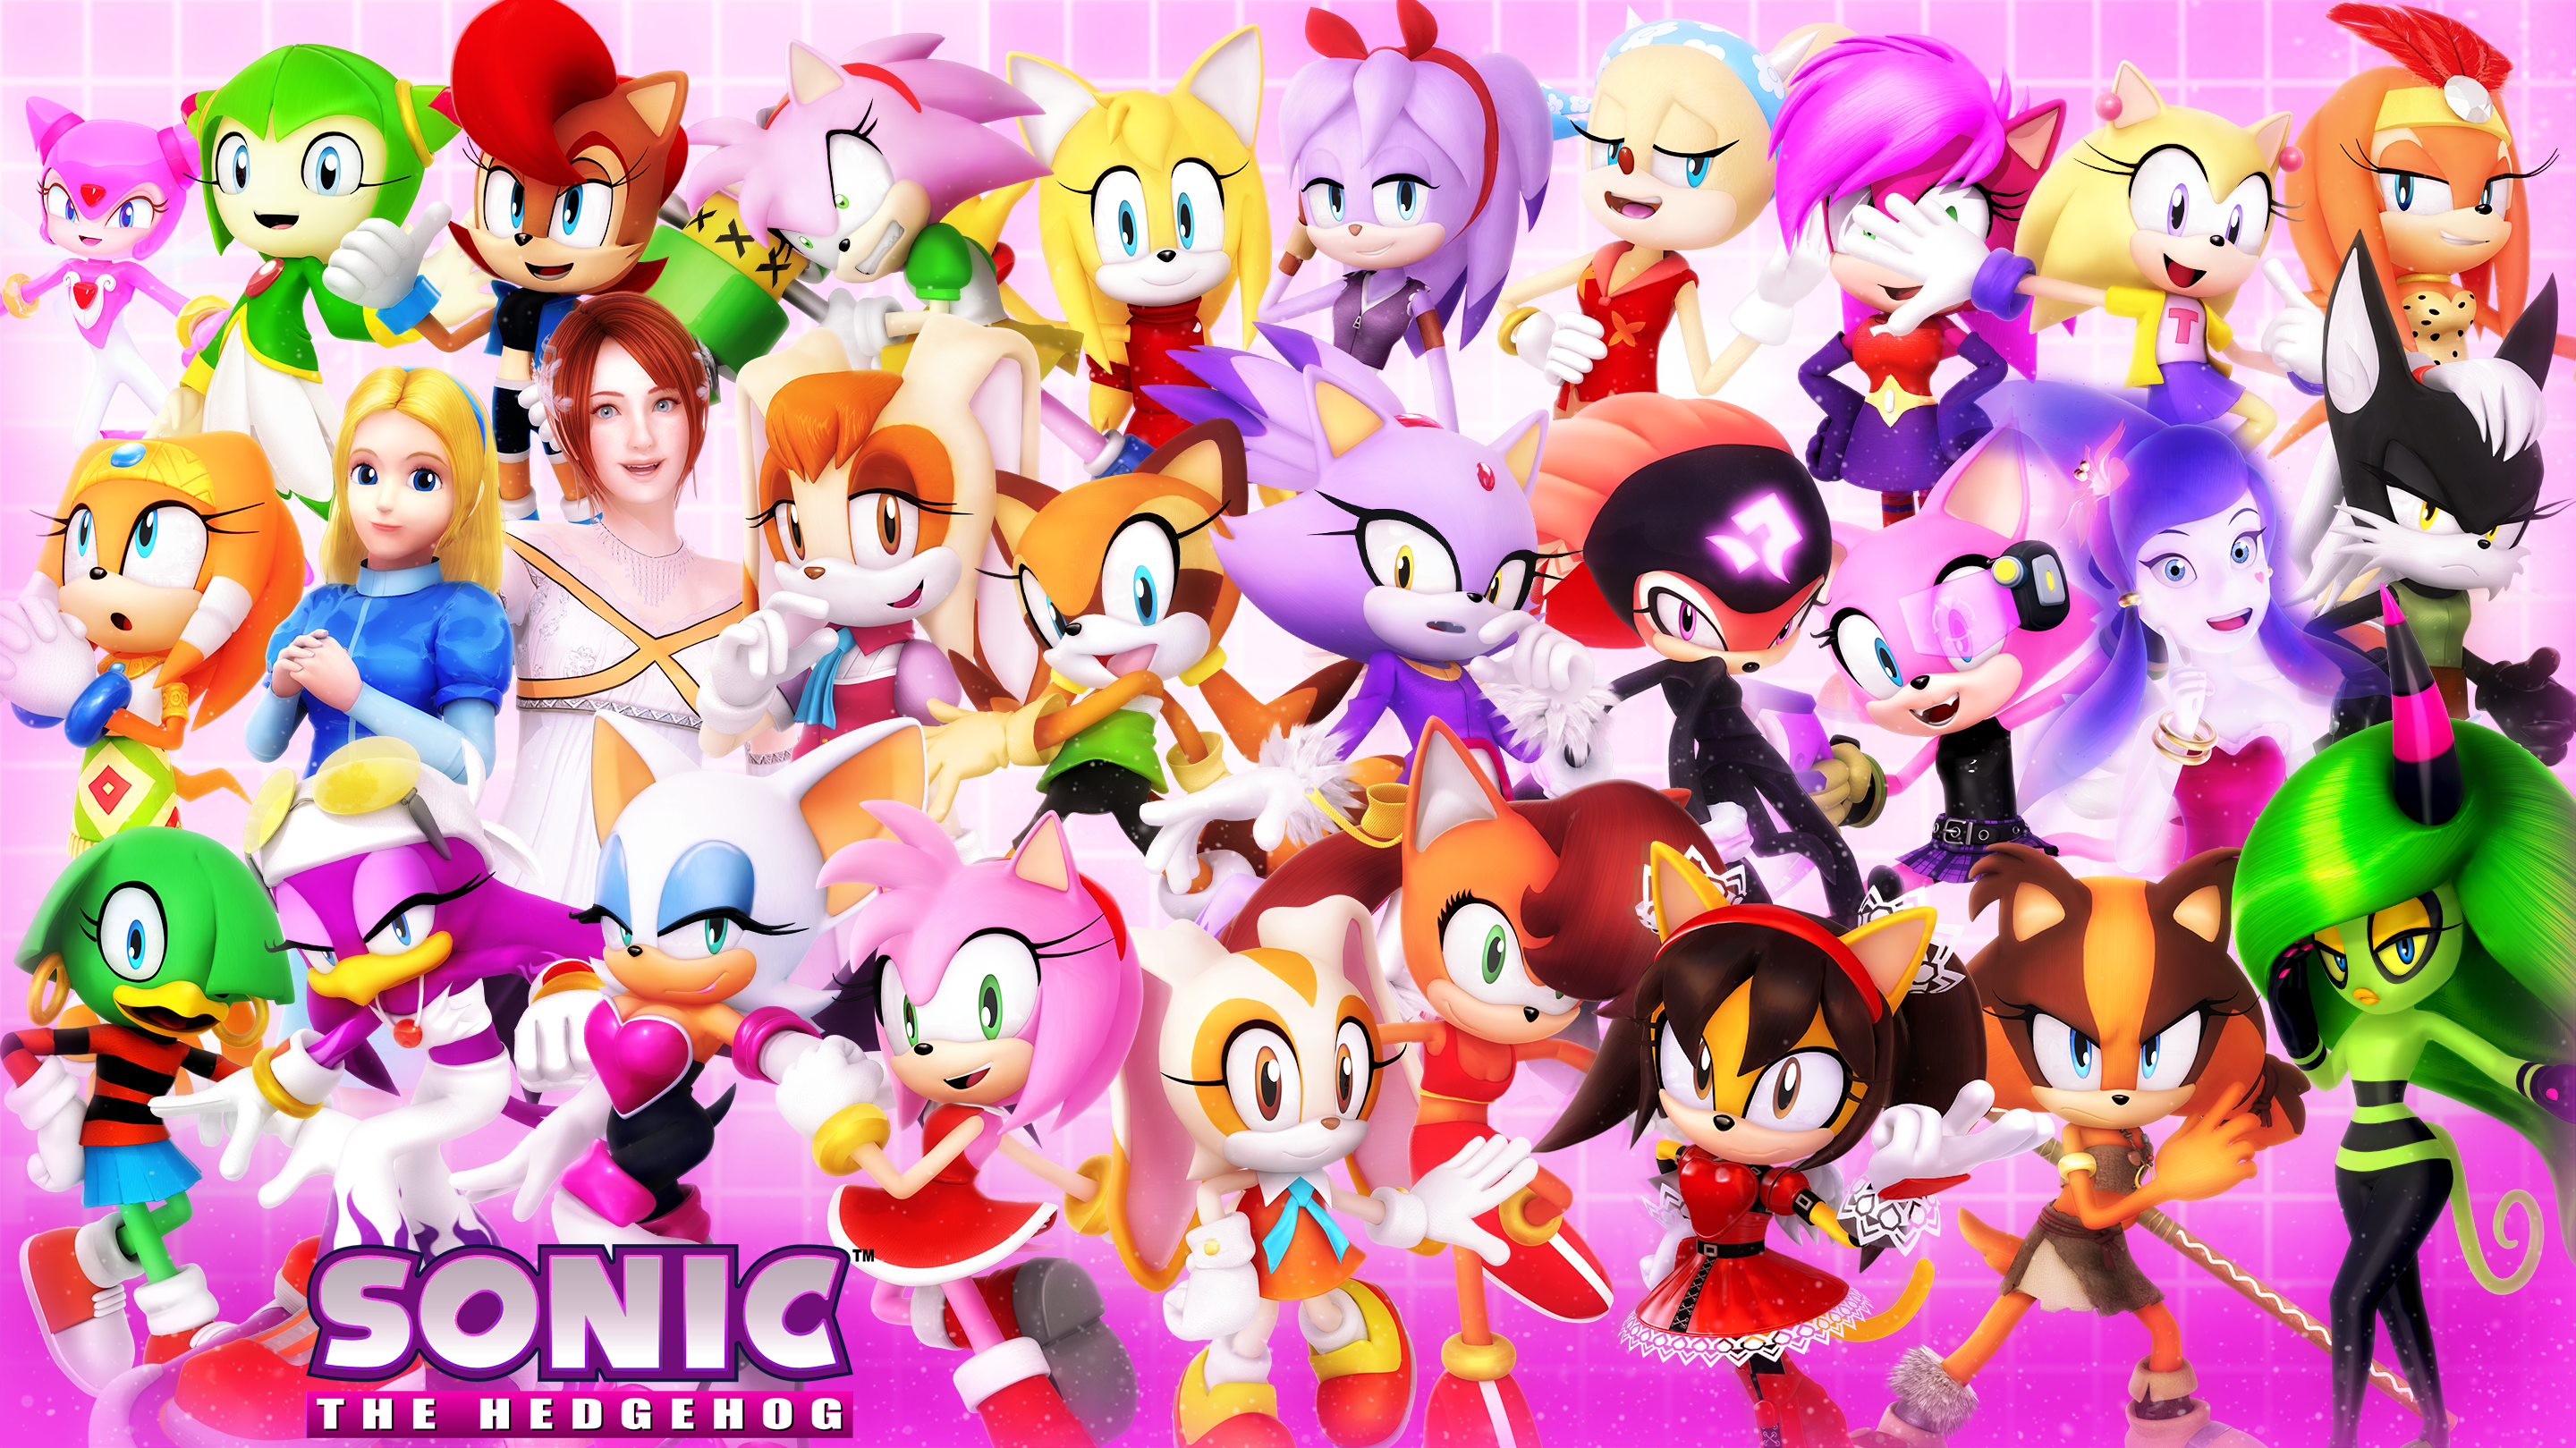 Female Cast Of Sonic 2020 Textless By Nibroc Rock On Deviantart